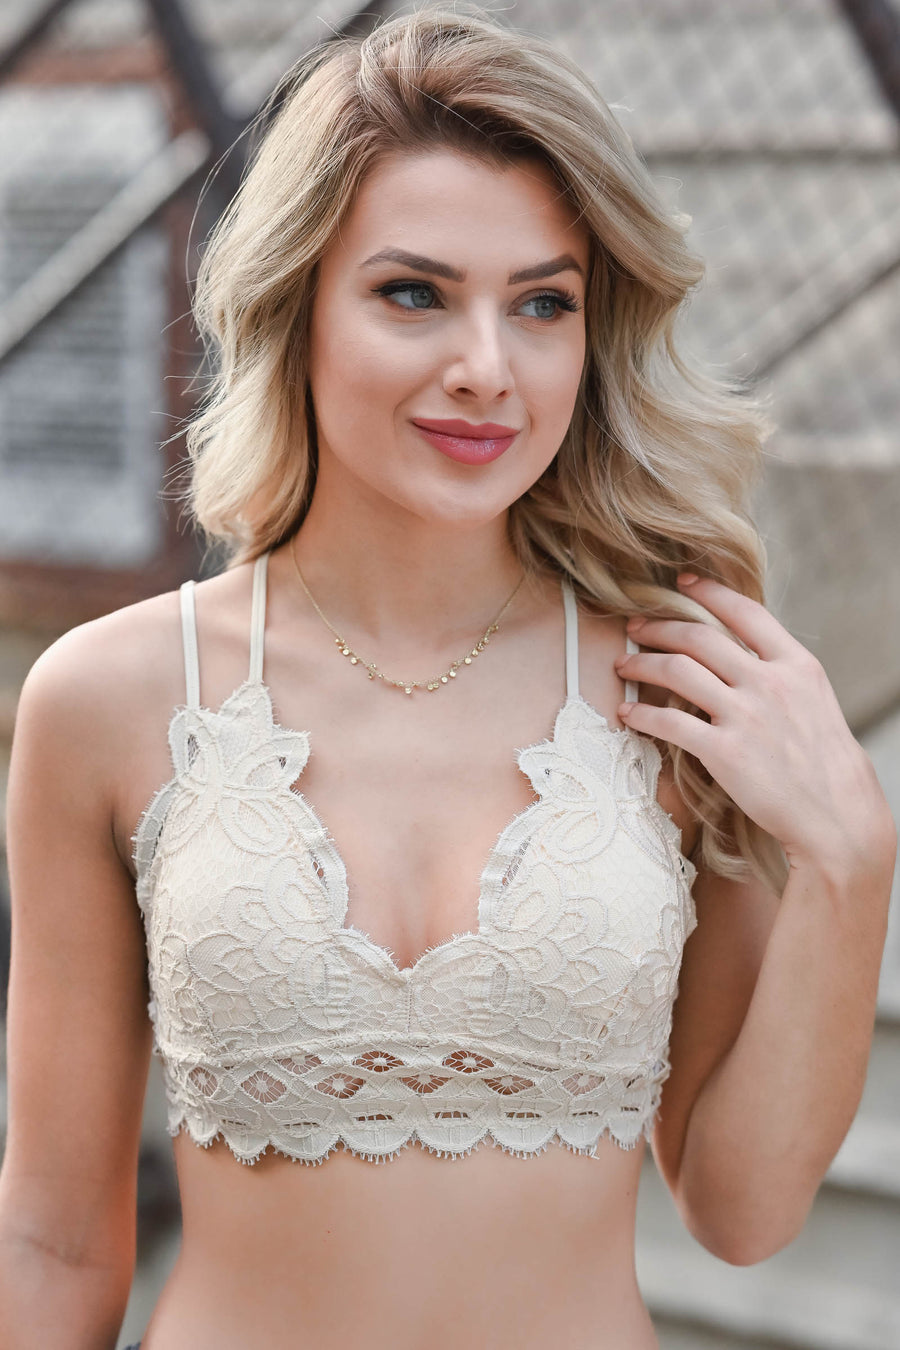 Day Dreamer Bralette - Natural womens trendy padded lace bralette closet candy back